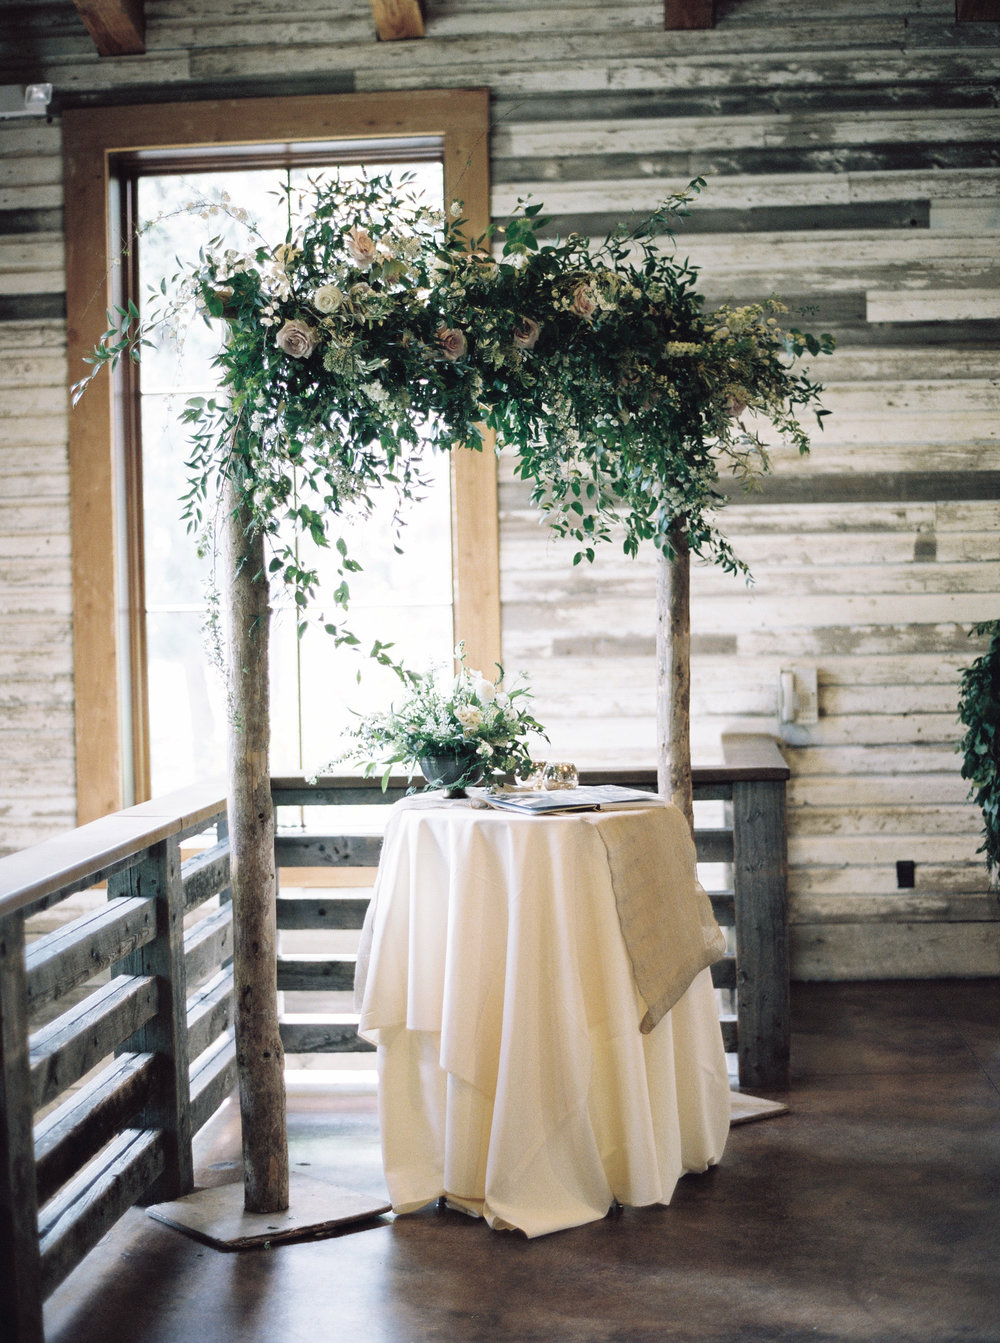 Mila Adams Louisville Lexington Kentucky Florist Floral Arch